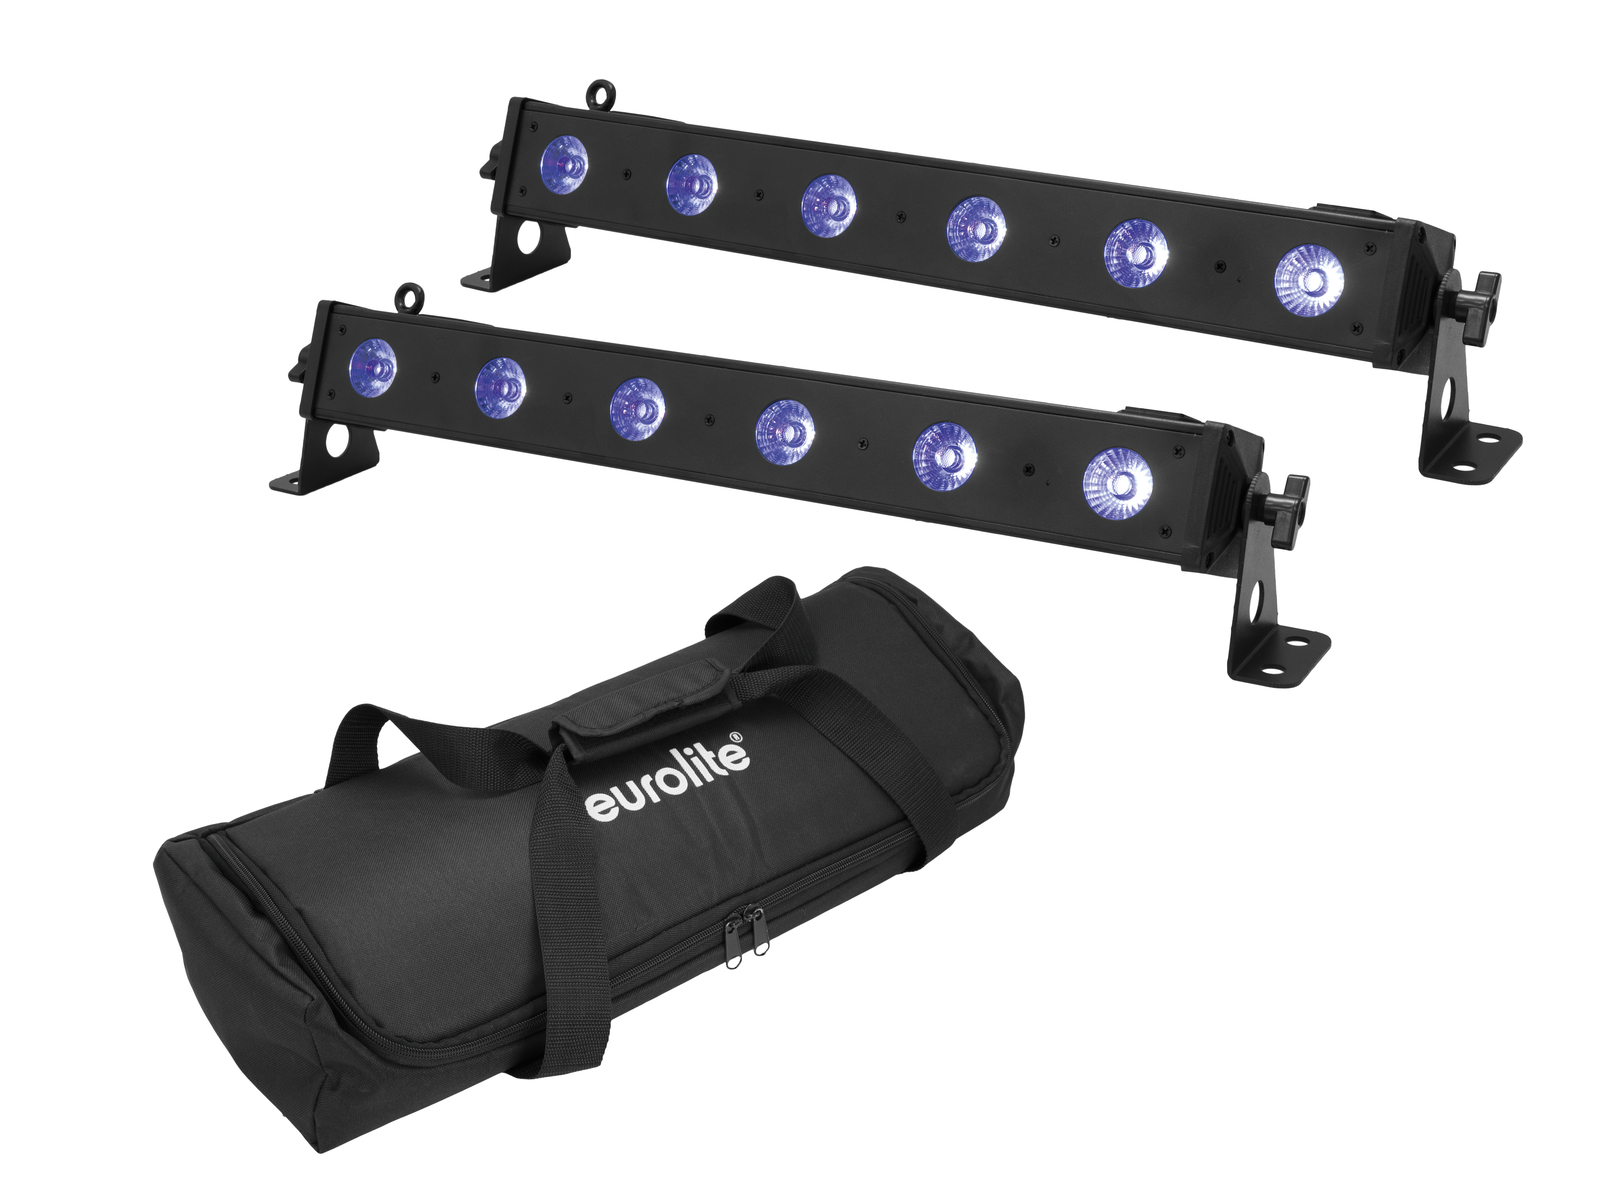 EUROLITE Set 2x LED BAR-6 QLC RGB+UV Bar + Soft Bag